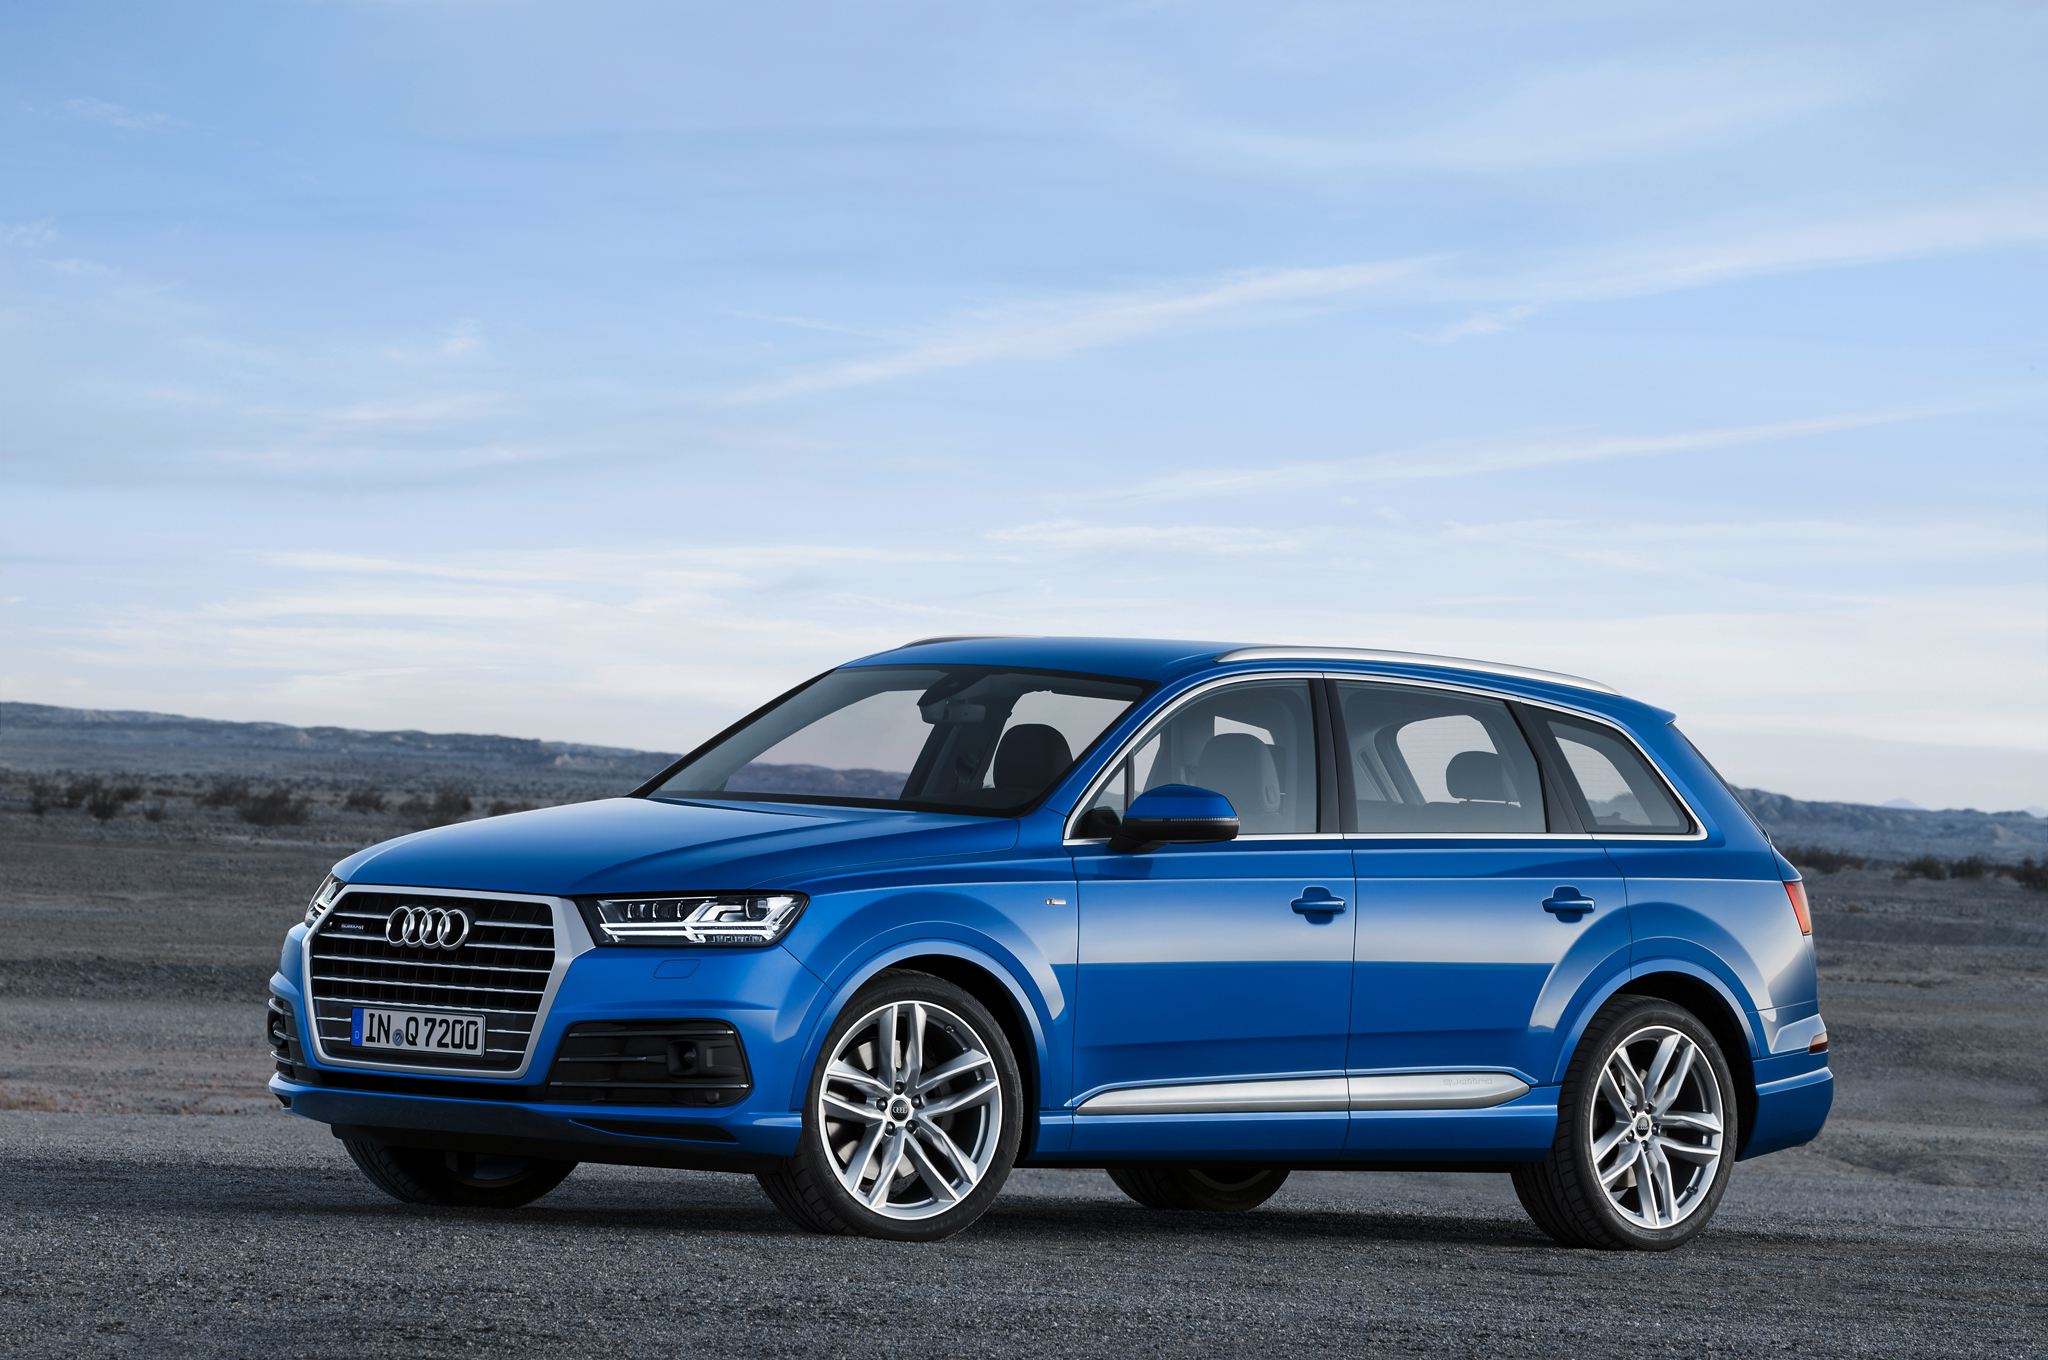 2016 Audi Q7 Front Side View (Photo 1 of 8)